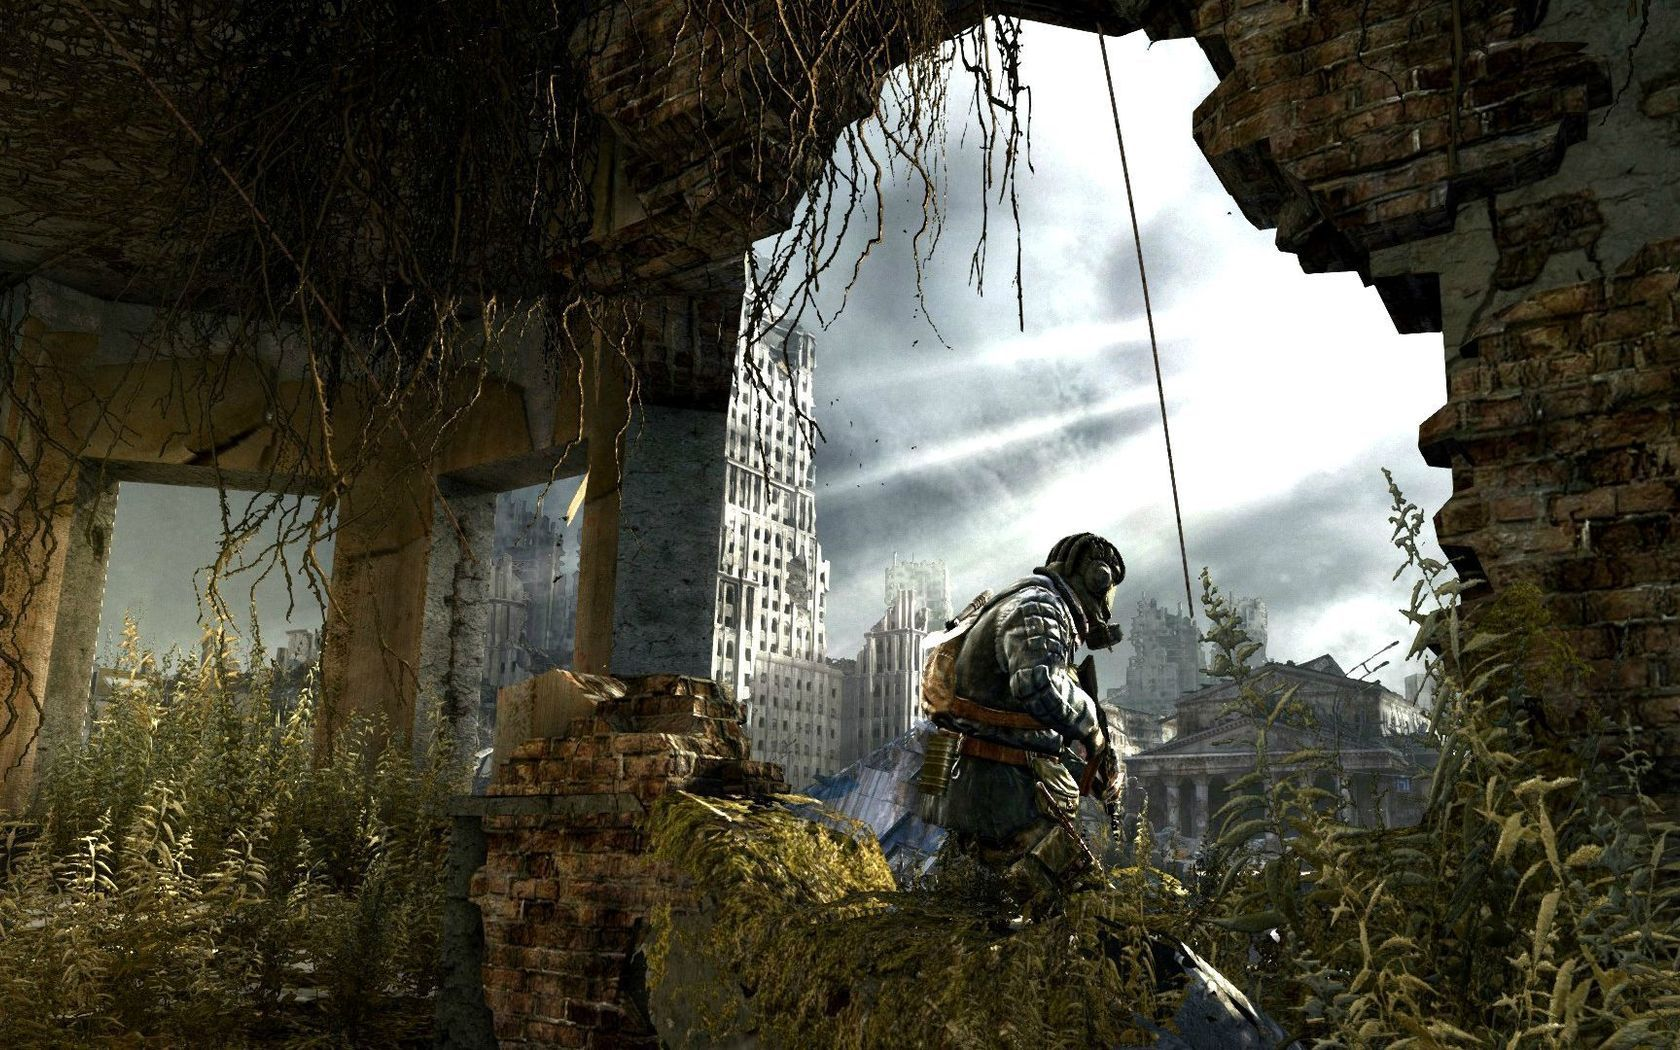 14585 download wallpaper Games, S.t.a.l.k.e.r. screensavers and pictures for free